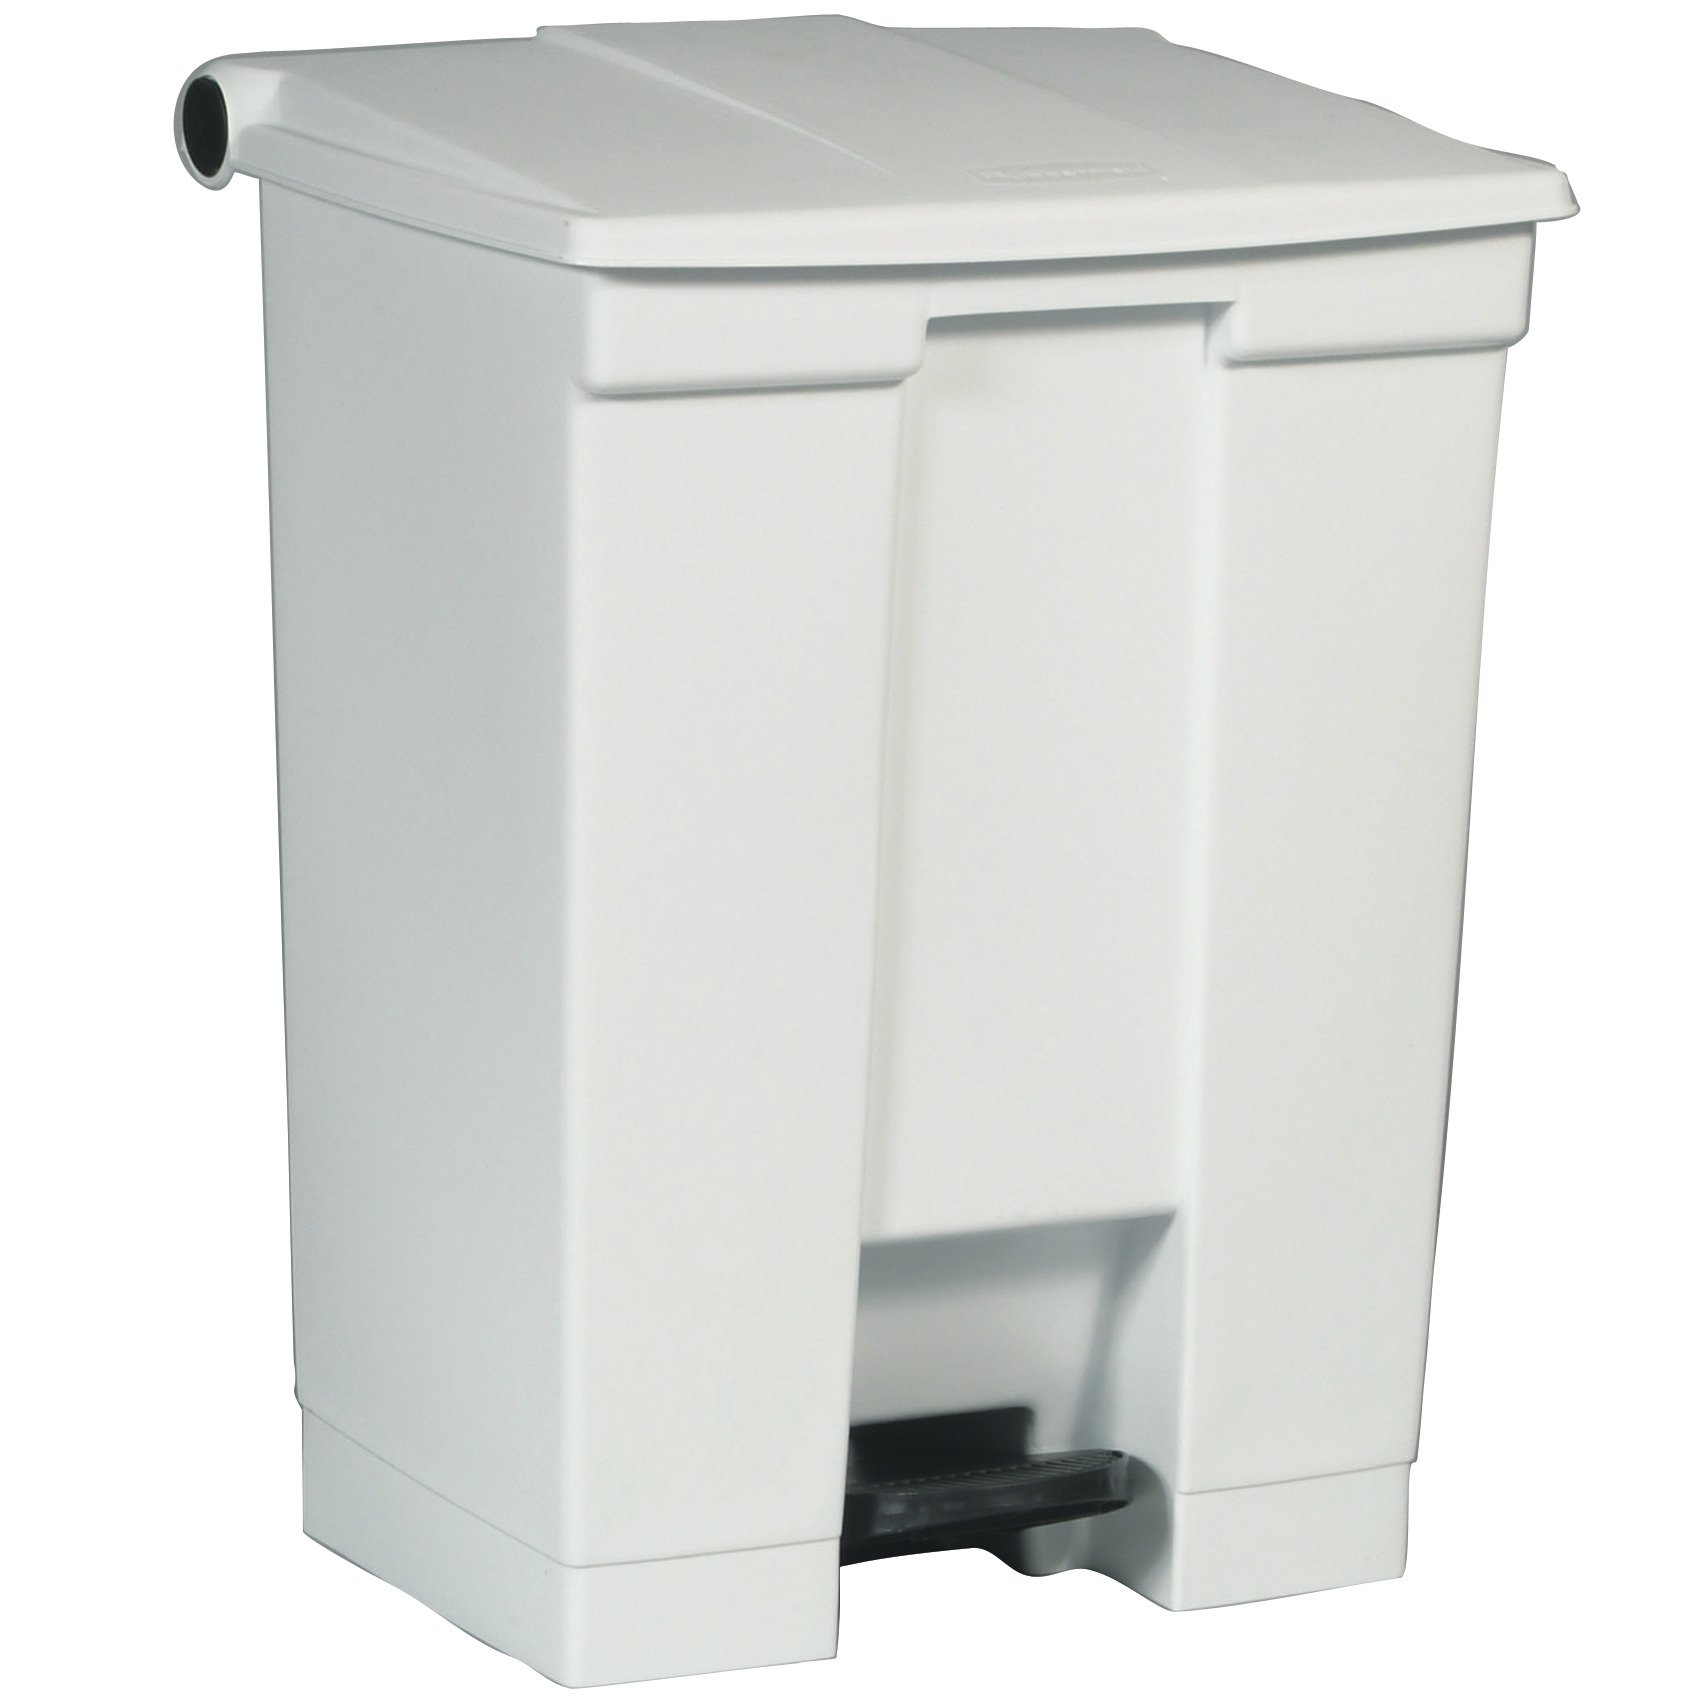 Rubbermaid Commercial Slim Jim Front Step On Trash Can, White, 18 Gallon